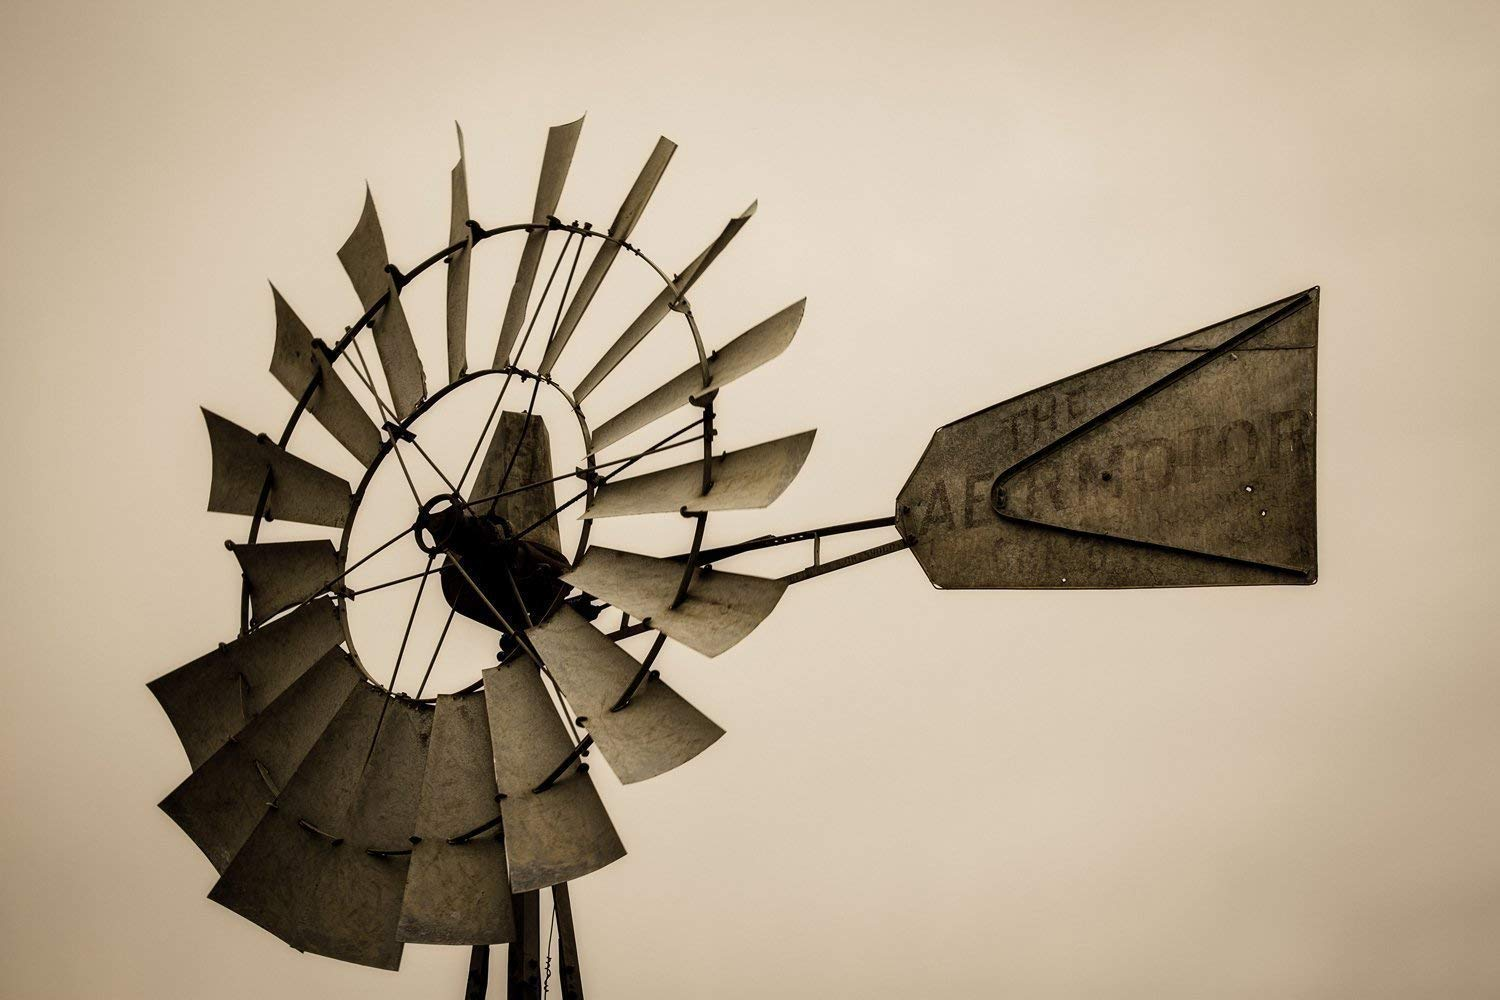 Picture of Windmill Head on Iowa Farm in Sepia Tone Farmhouse Decor 5x7 to 40x60 Country Photography Wall Art Print